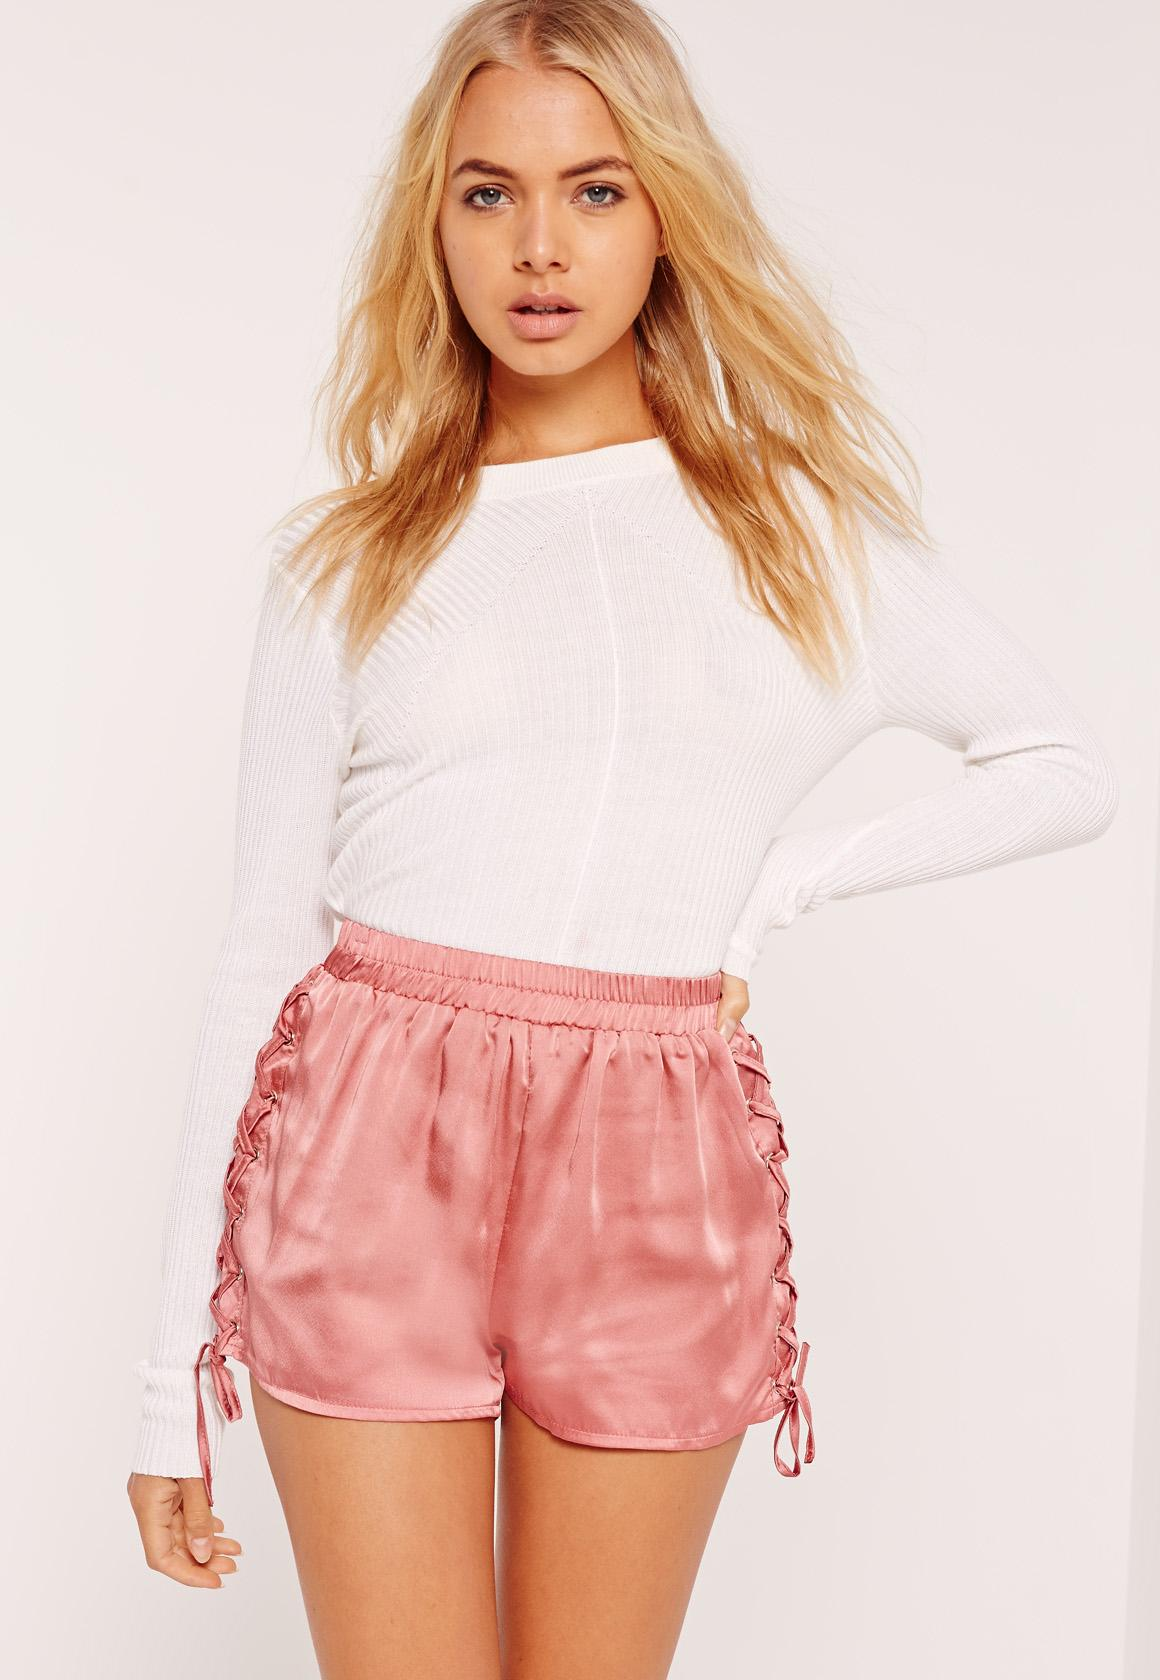 Lace Up Side Satin Shorts Pink